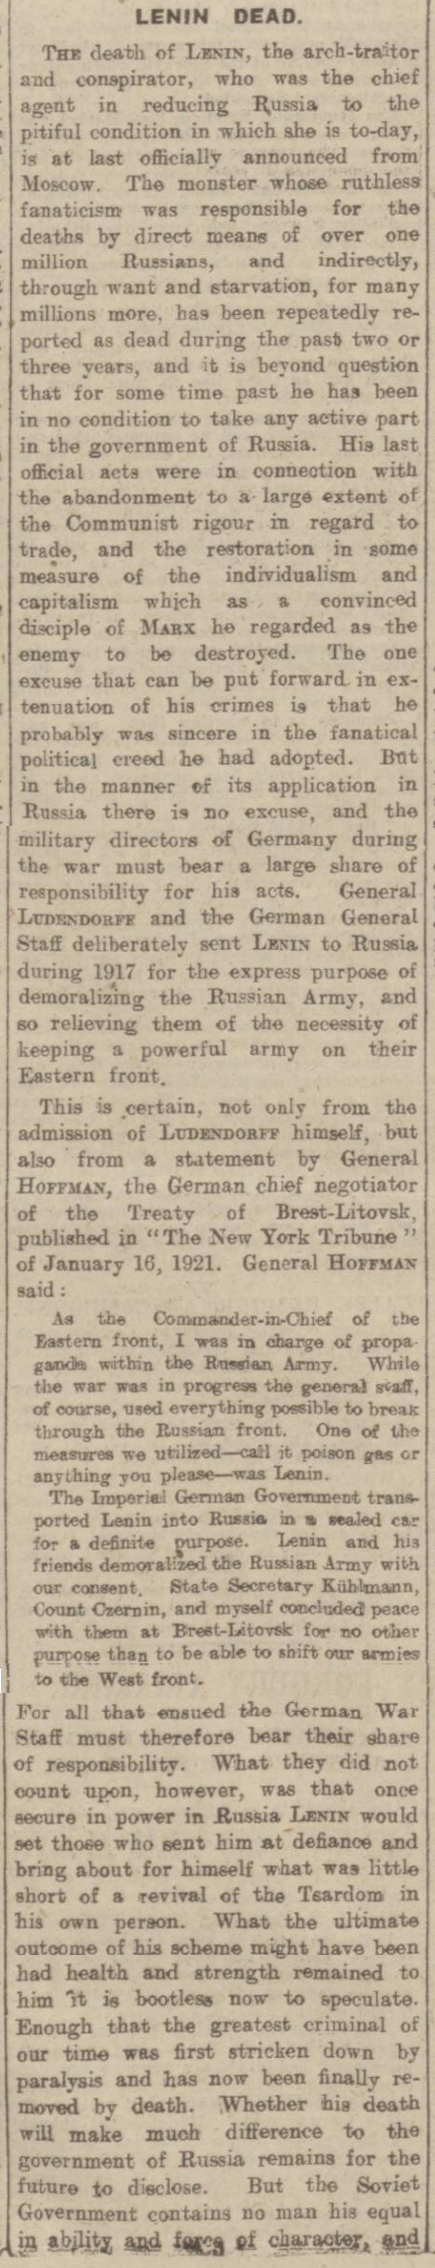 newspaper story about the death of lenin